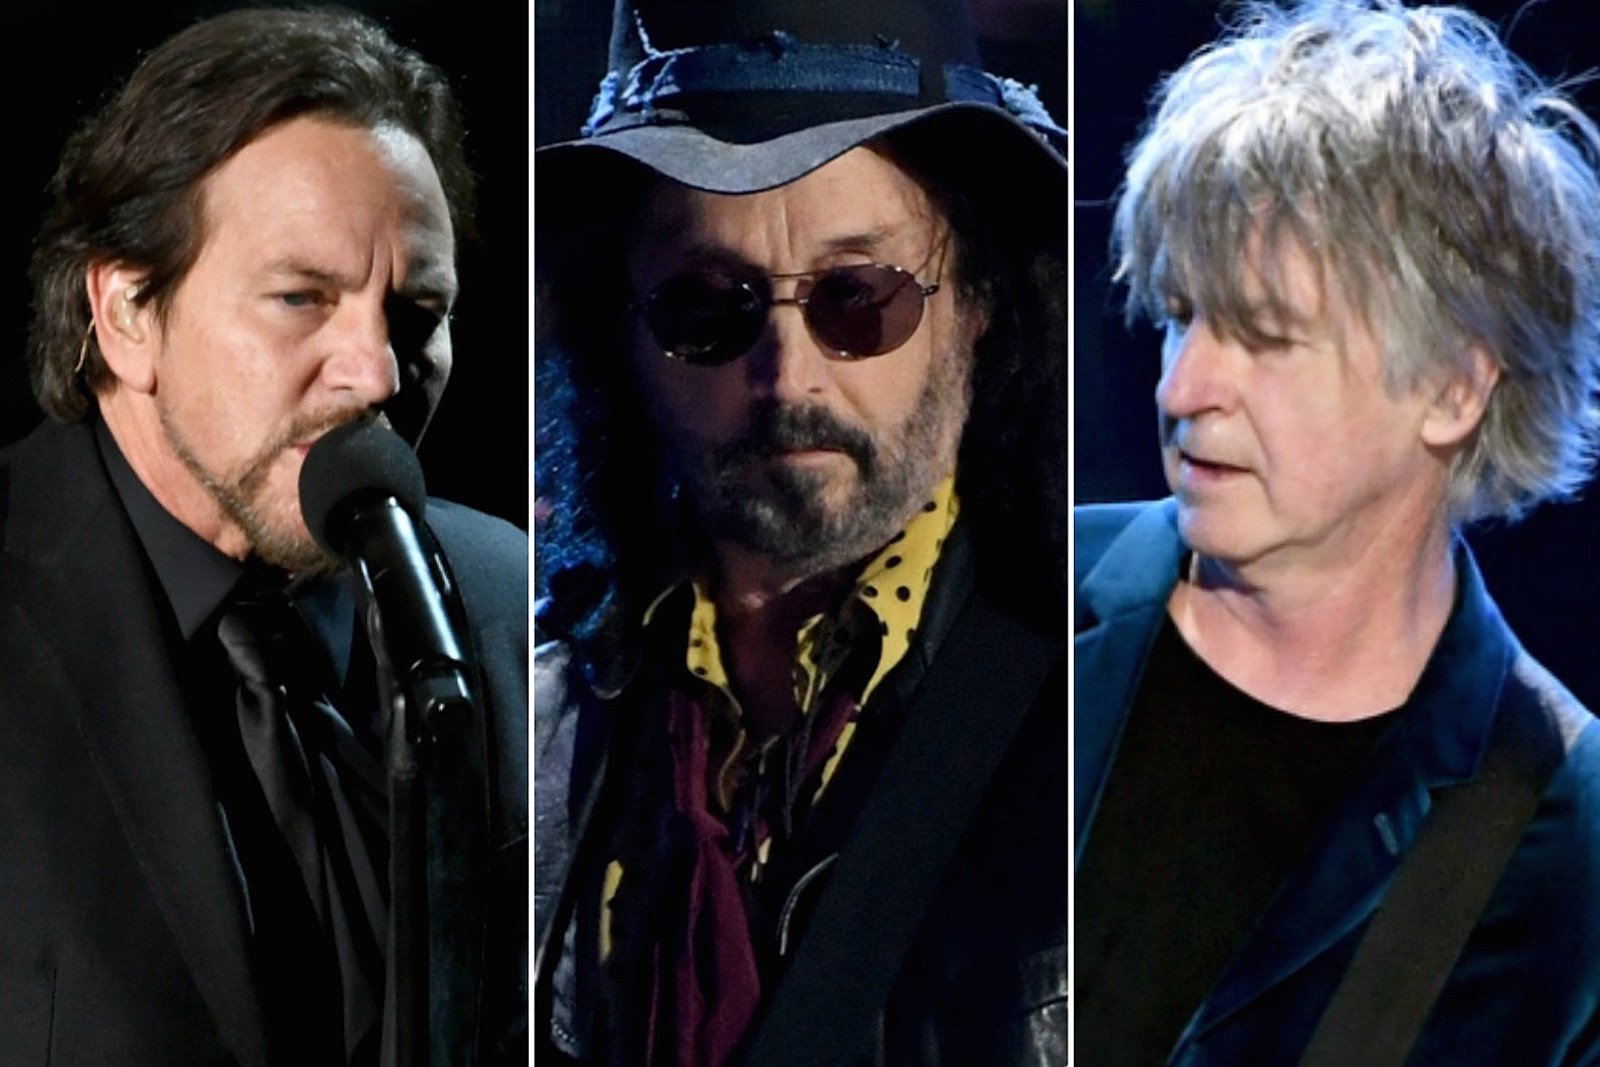 Eddie Vedder and Neil Finn Join Mike Campbell in the Bathroom